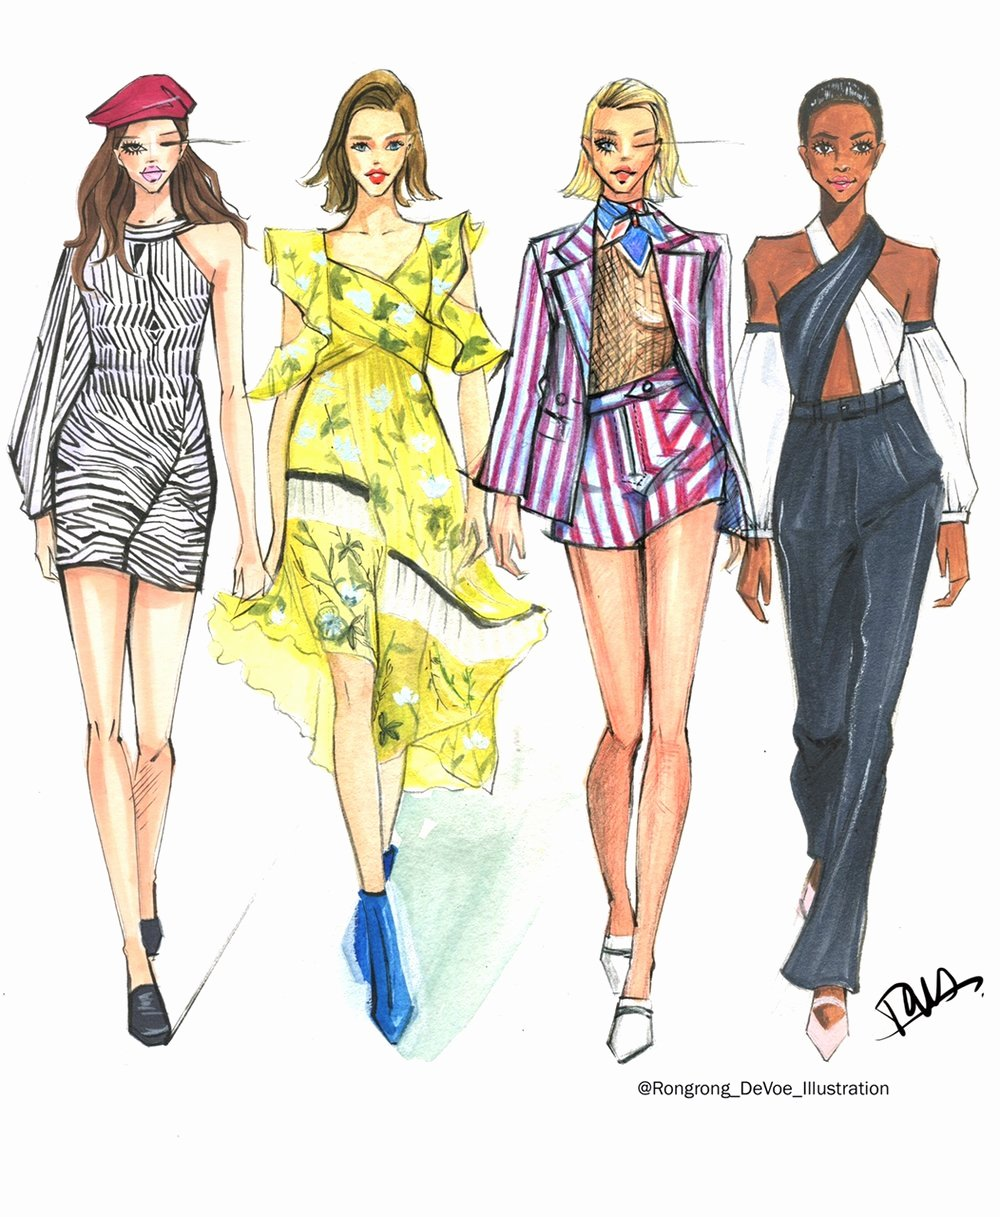 Fashion Designing Sketches Of Models Fresh Fashion Sketches Inspired by New York Fashion Week Ss18 Season — Fashion and Beauty Illustrator